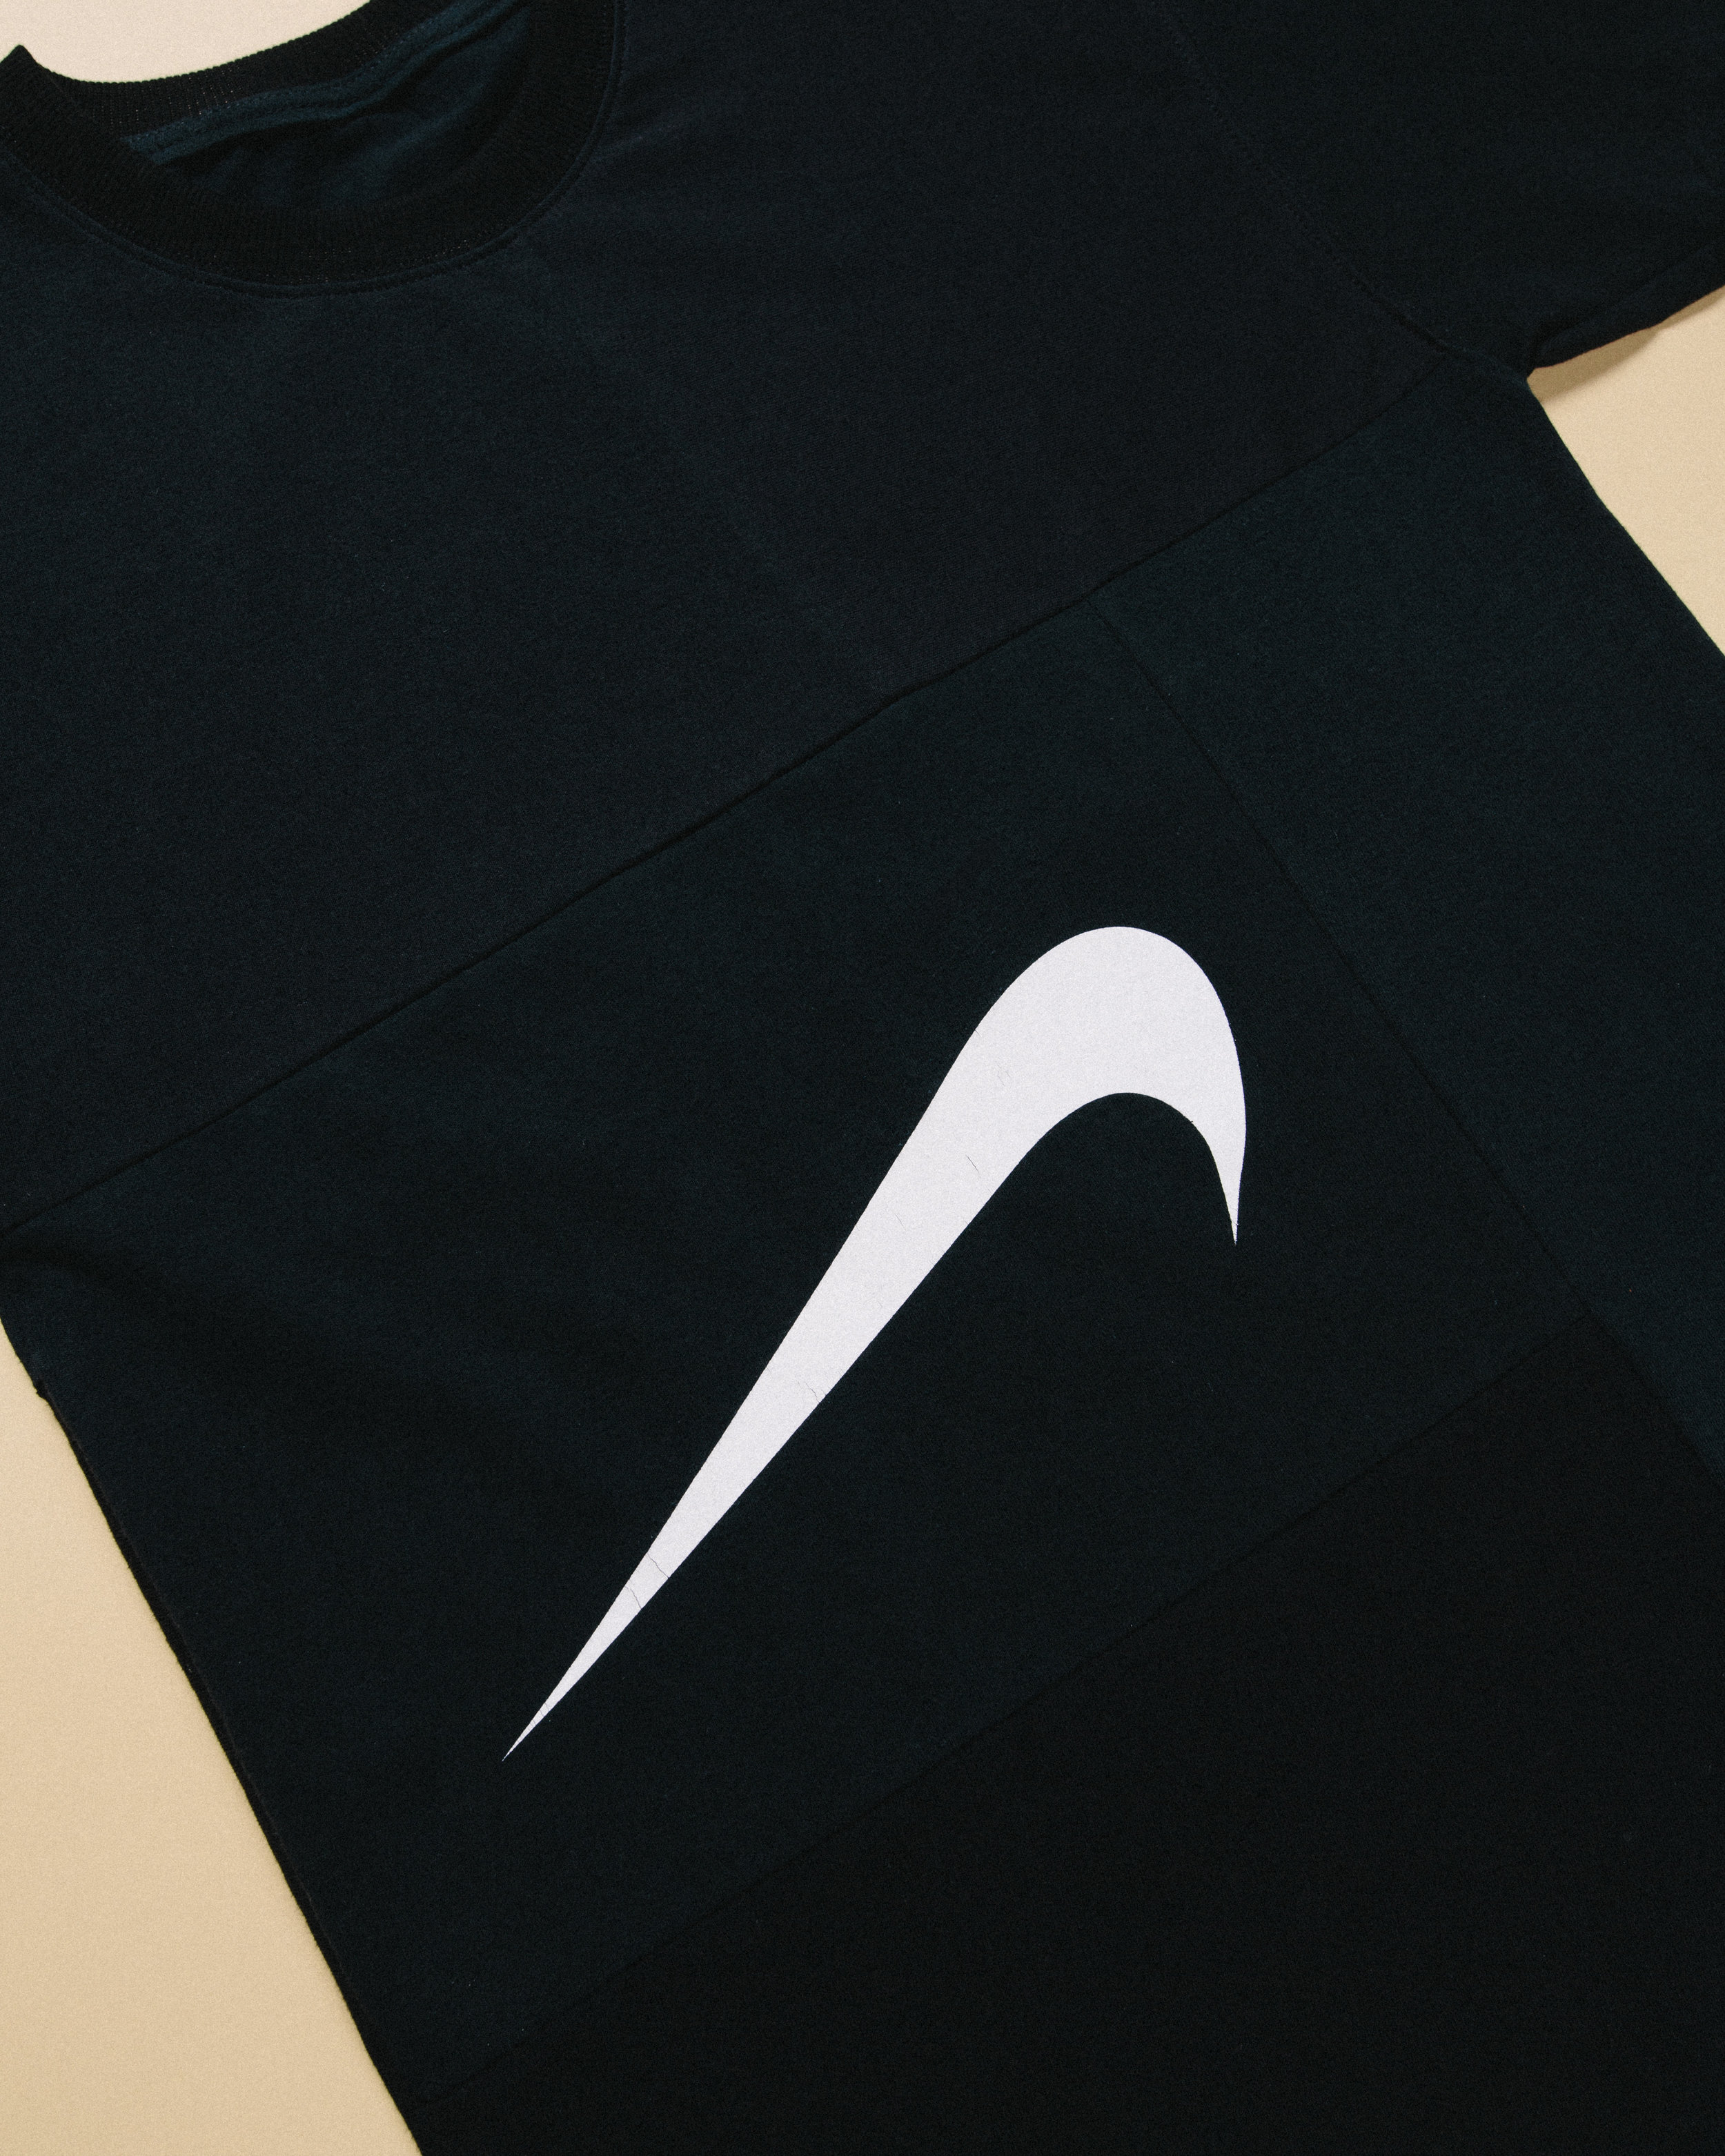 Upside Down Swoosh - Made using several tones of black t-shirts along with the main nike tee to create a new take on the classic swoosh